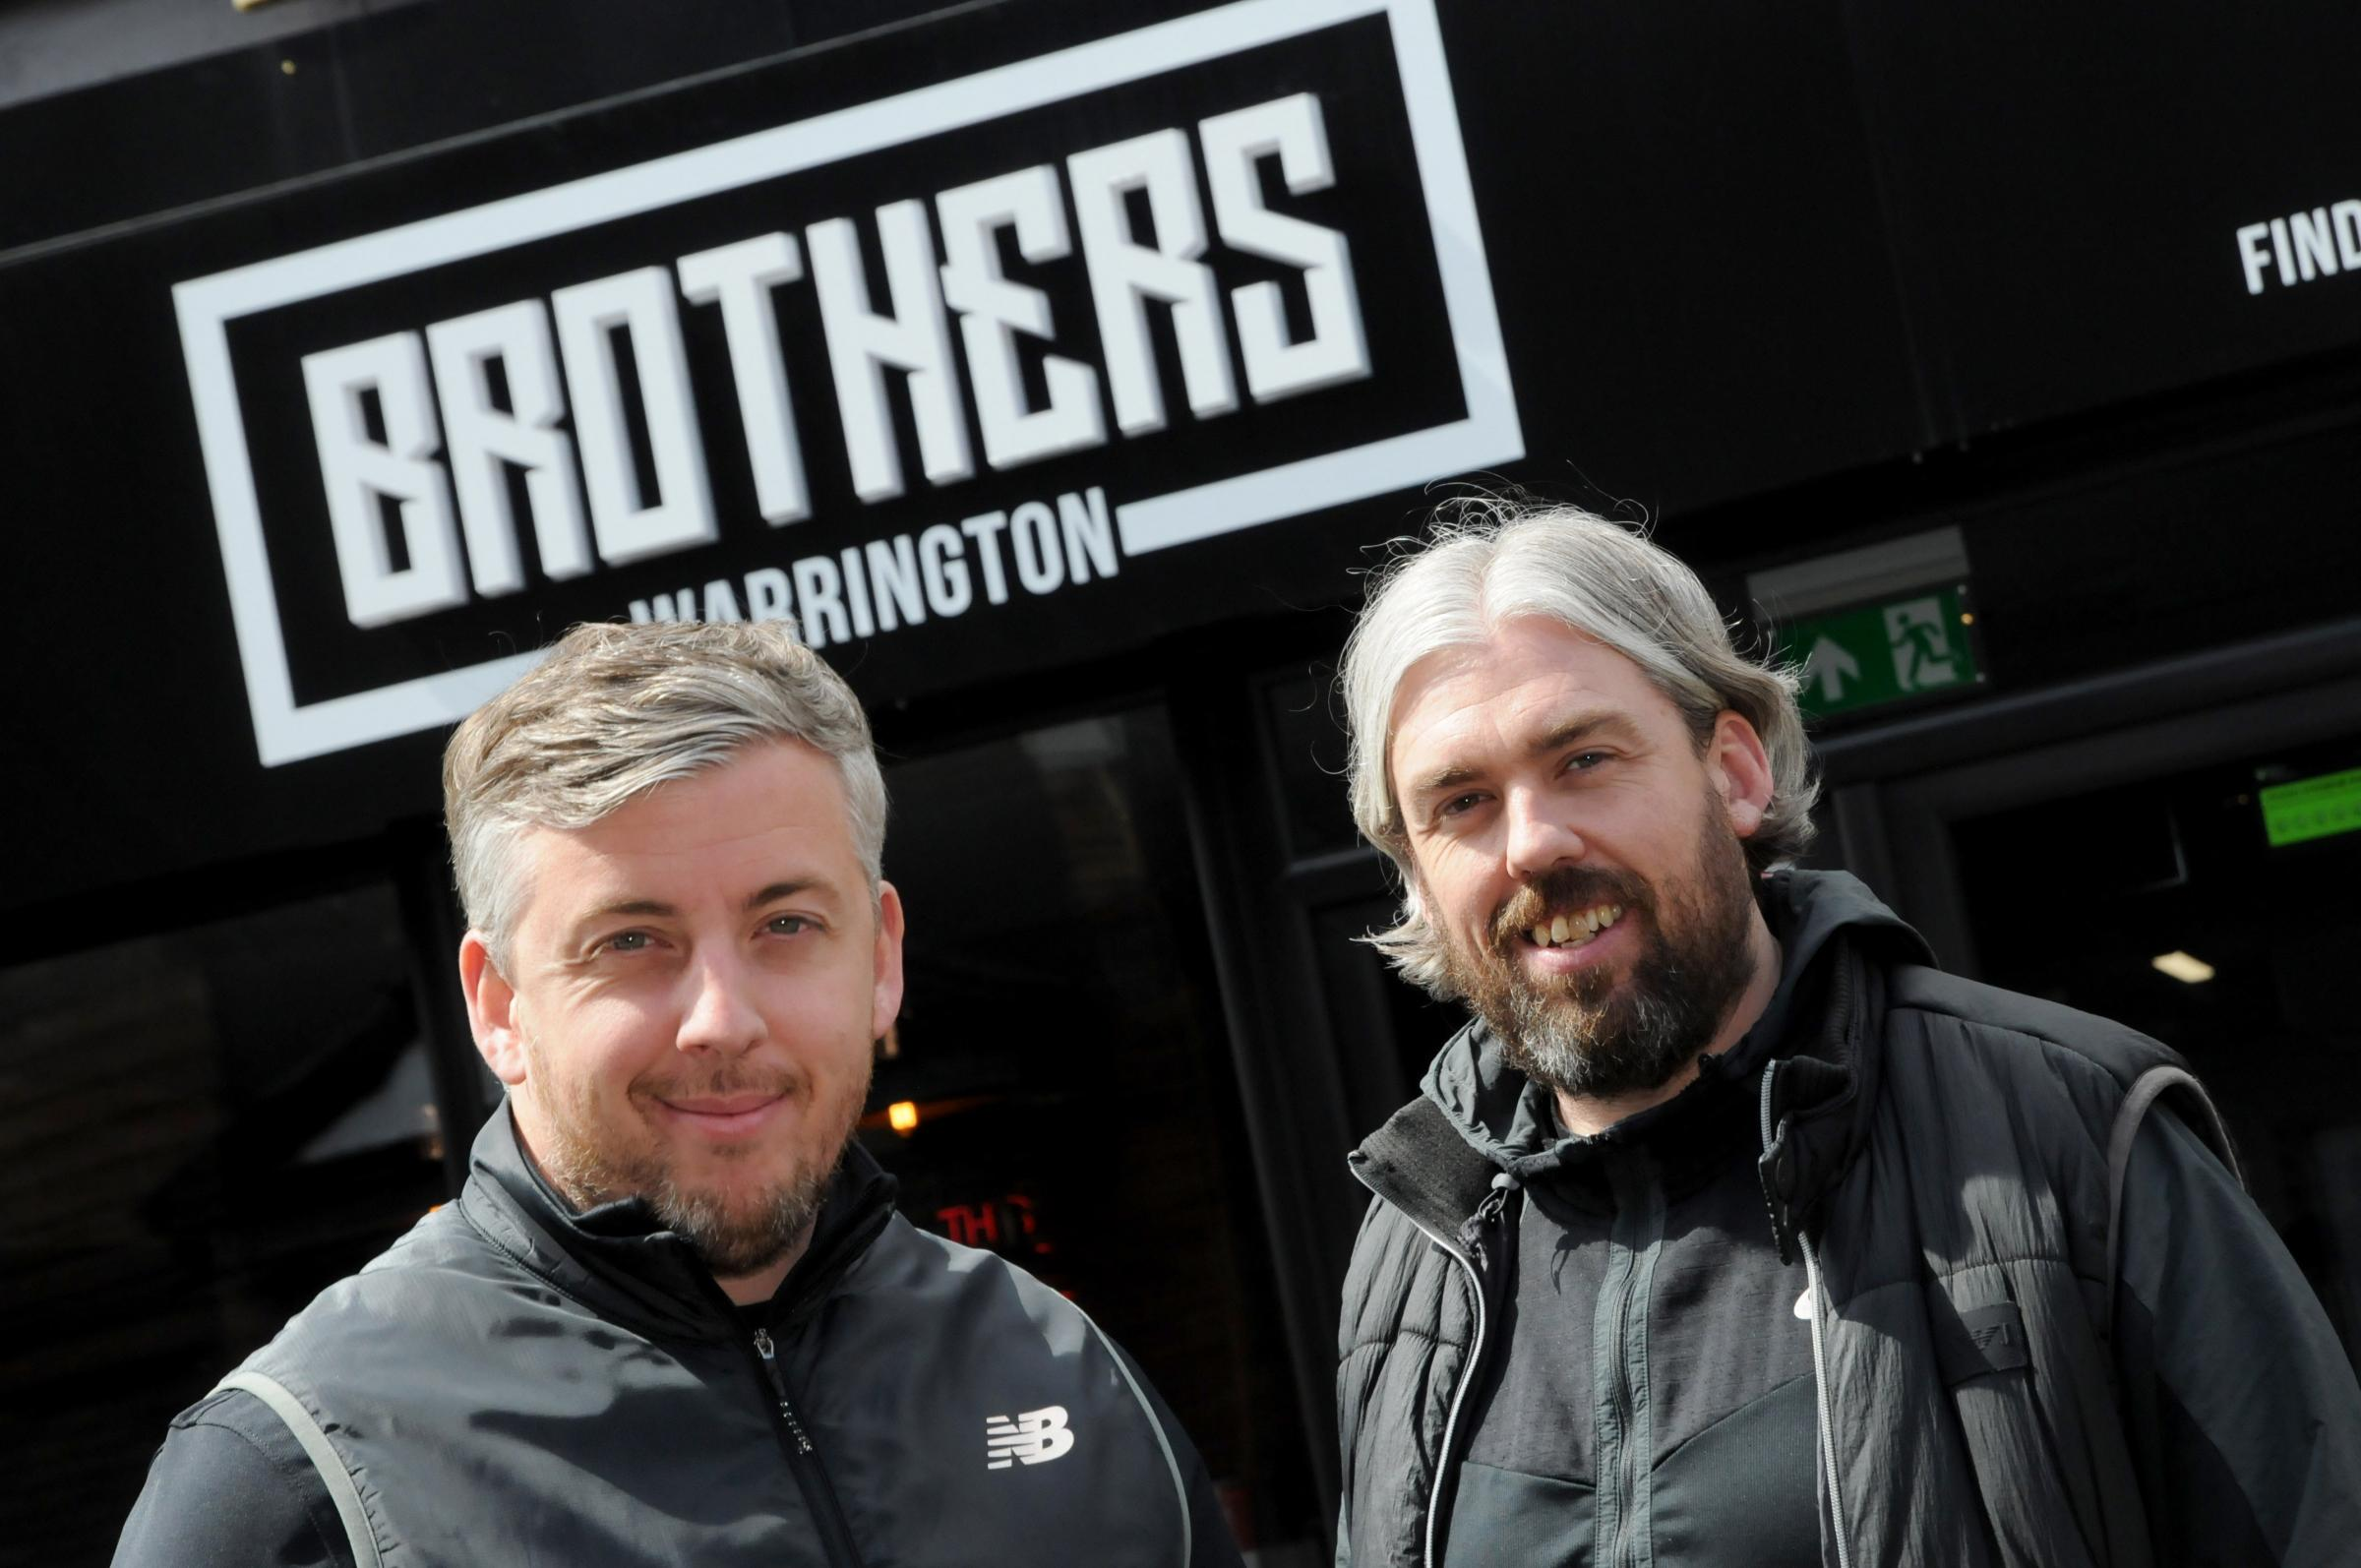 Brothers Burgers to give away 200 cheeseburgers tomorrow as restaurant fully opens for first time